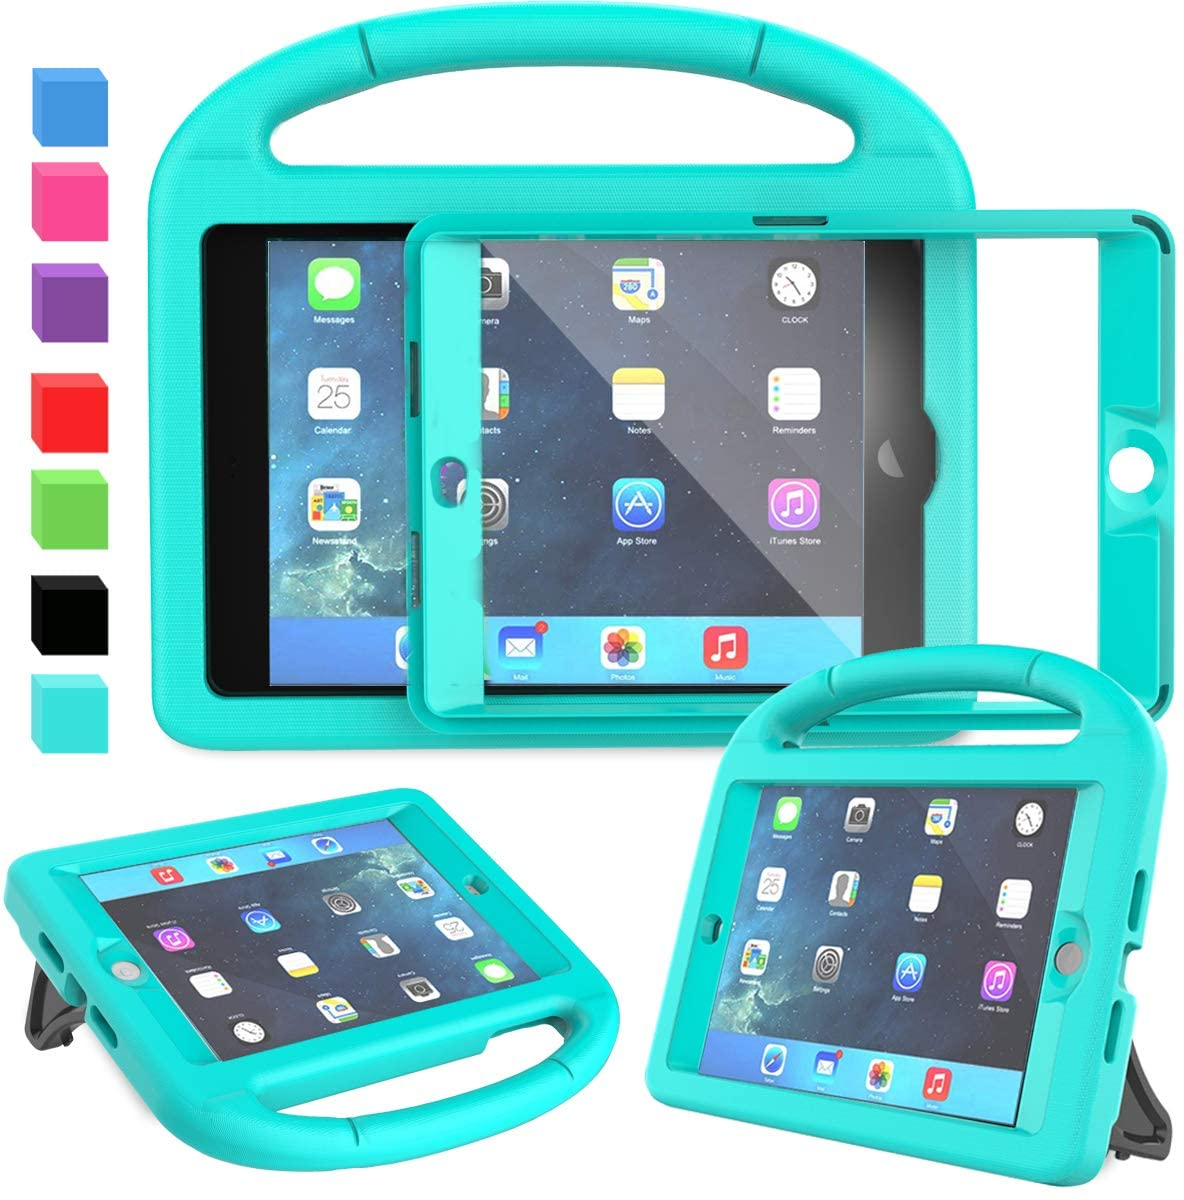 AVAWO Kids Case for iPad Mini 1 2 3 - Built-in Screen Protector Light Weight Shock Proof Handle Stand Kids Cover for iPad Mini 1st Gen, iPad Mini 2nd Gen, iPad Mini 3rd Generation - Turquoise